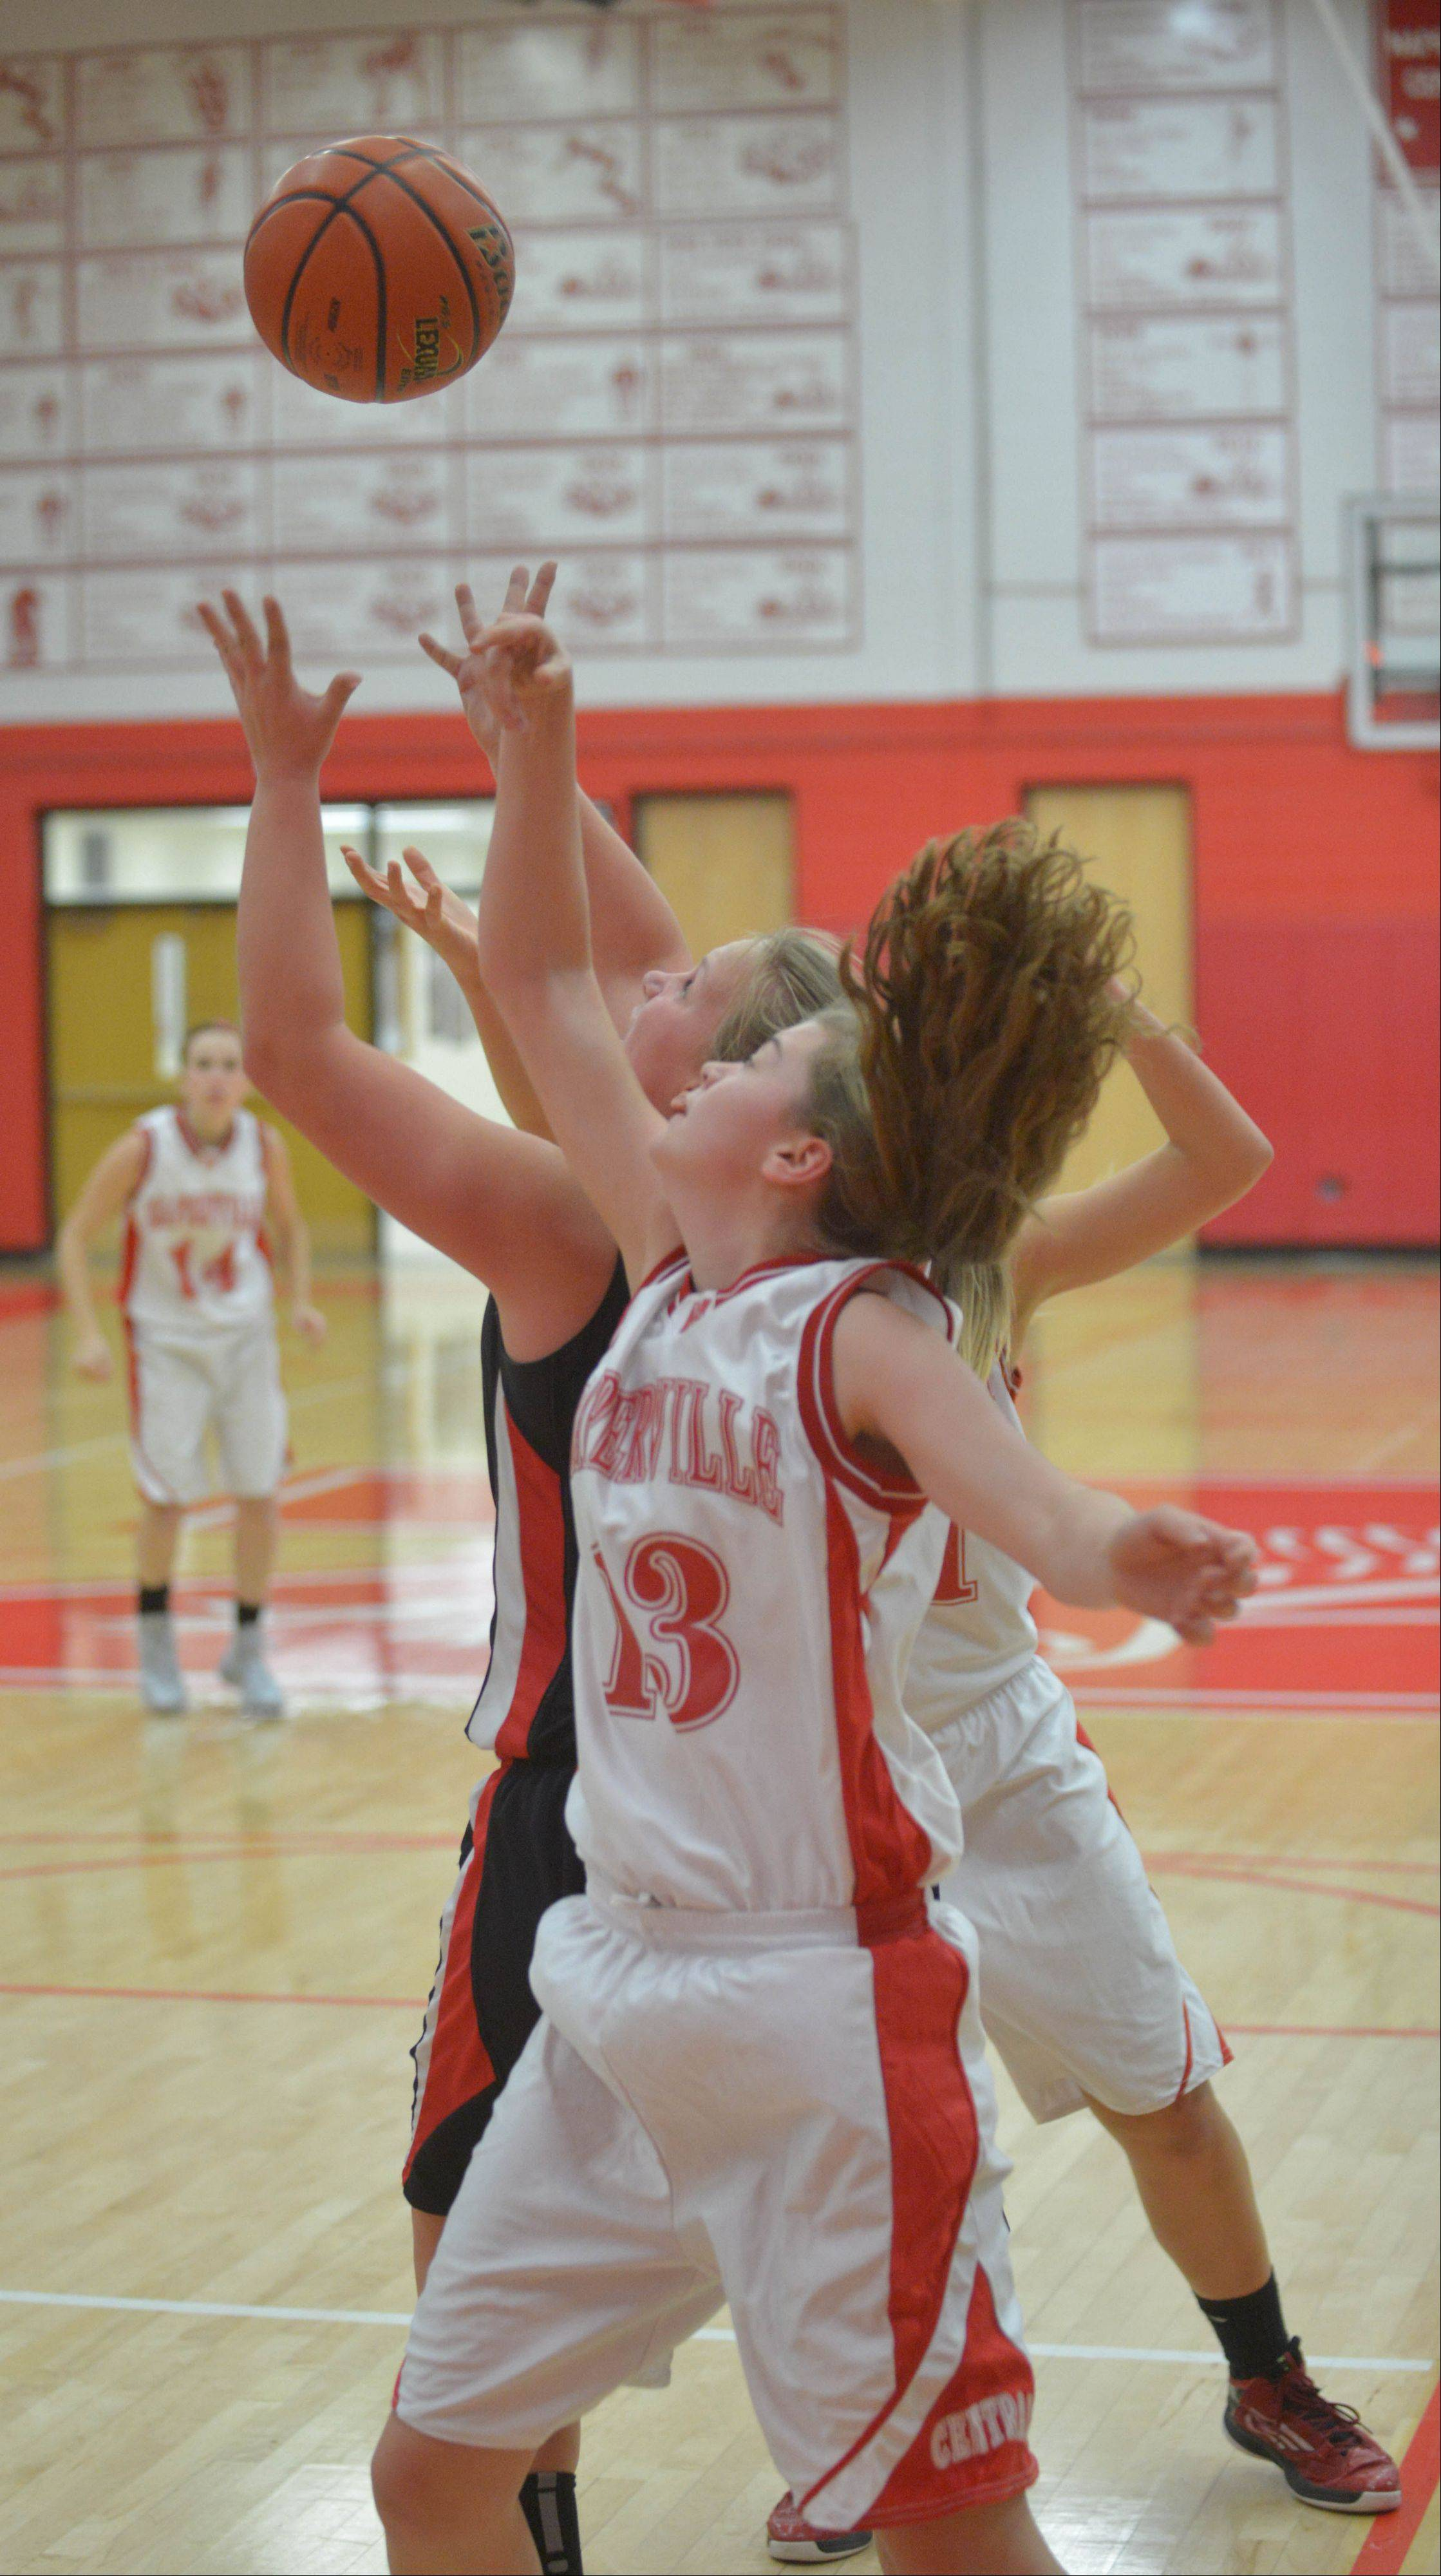 Katie Moran of Naperville Central goes up for a rebound.